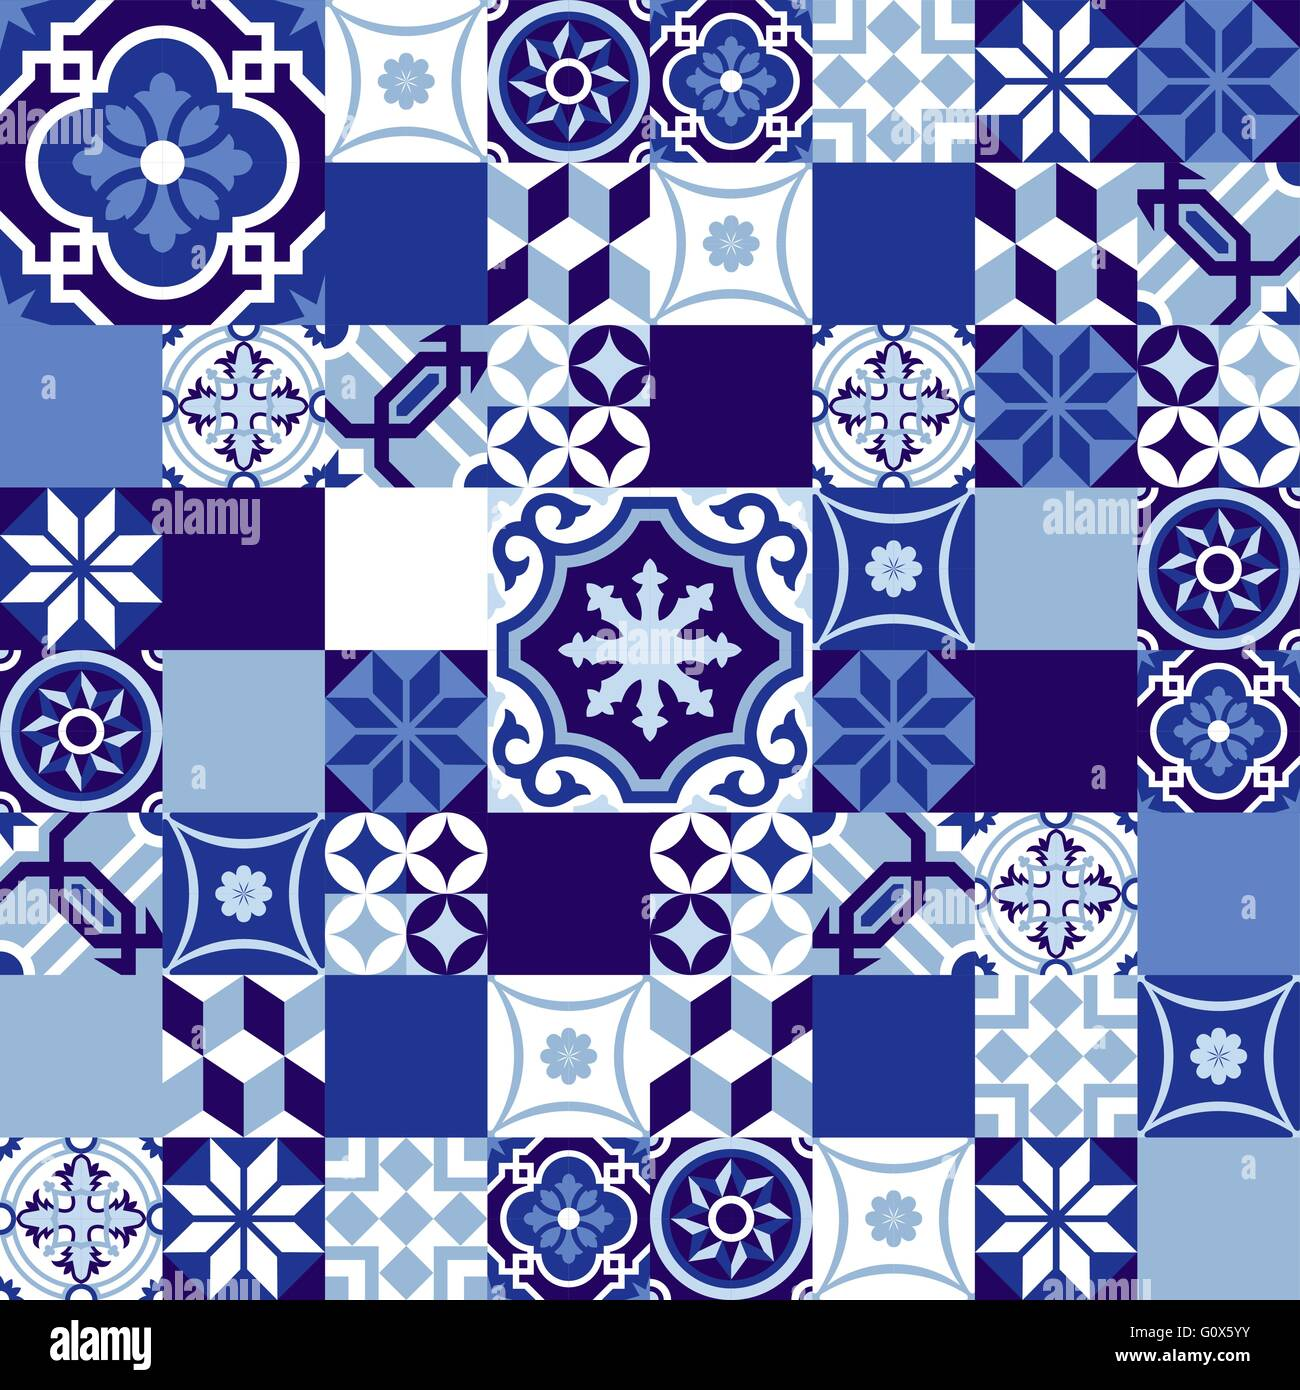 Indigo Vector Vectors Stock Photos The Wetbrush Watercolor Mossaics Starburst Blue Seamless Pattern In Patchwork Style Traditional Ceramic Mosaic Tile Decoration Eps10